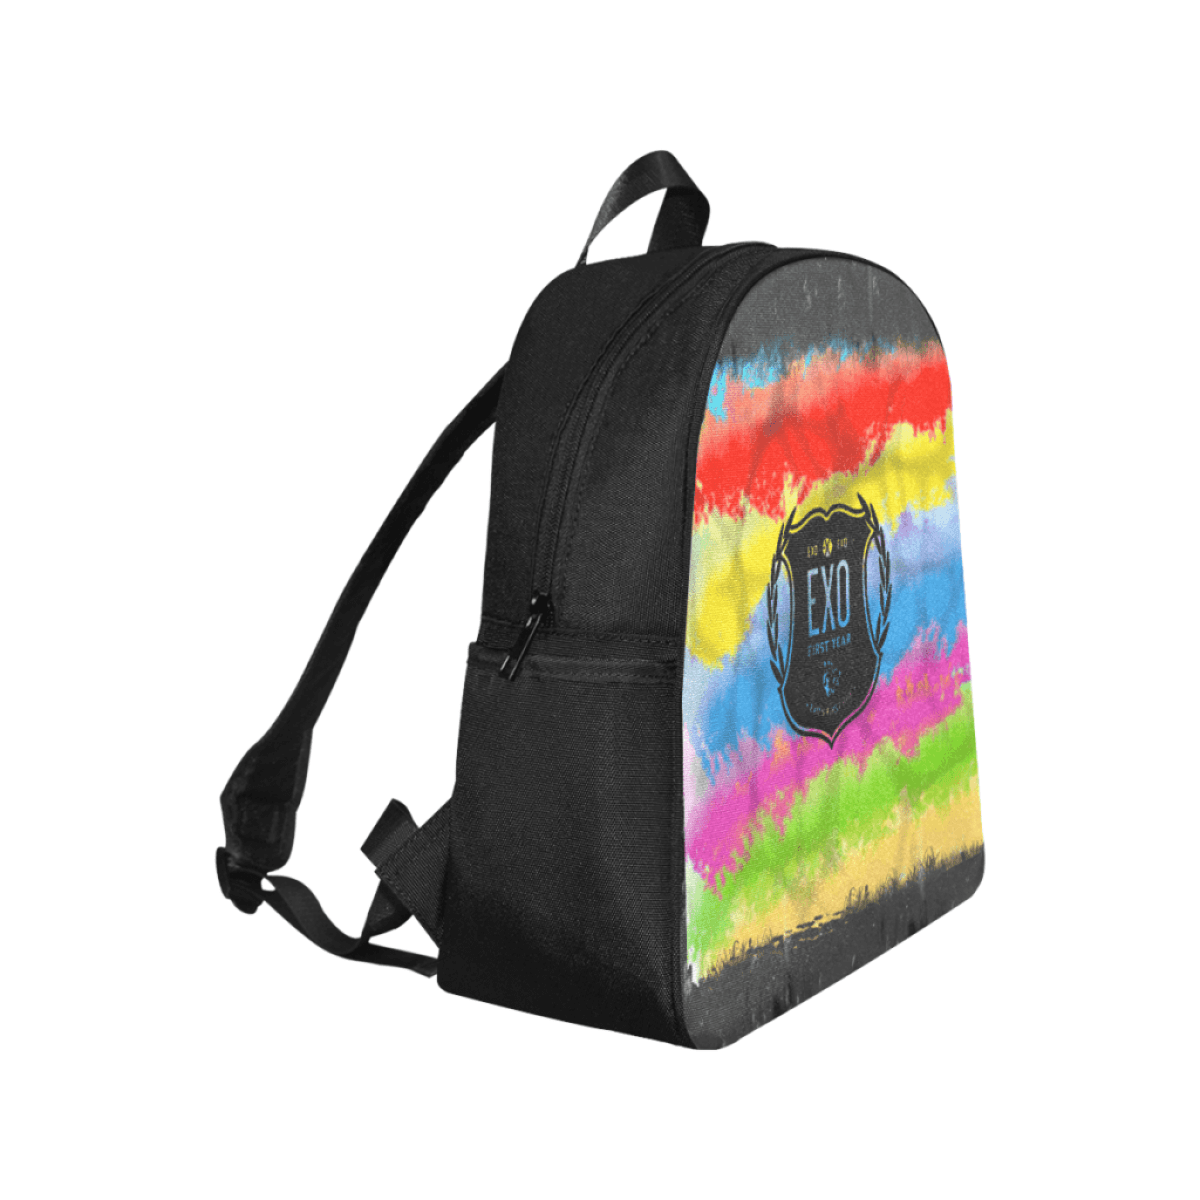 EXO Logo Multi-Pocket School Bag